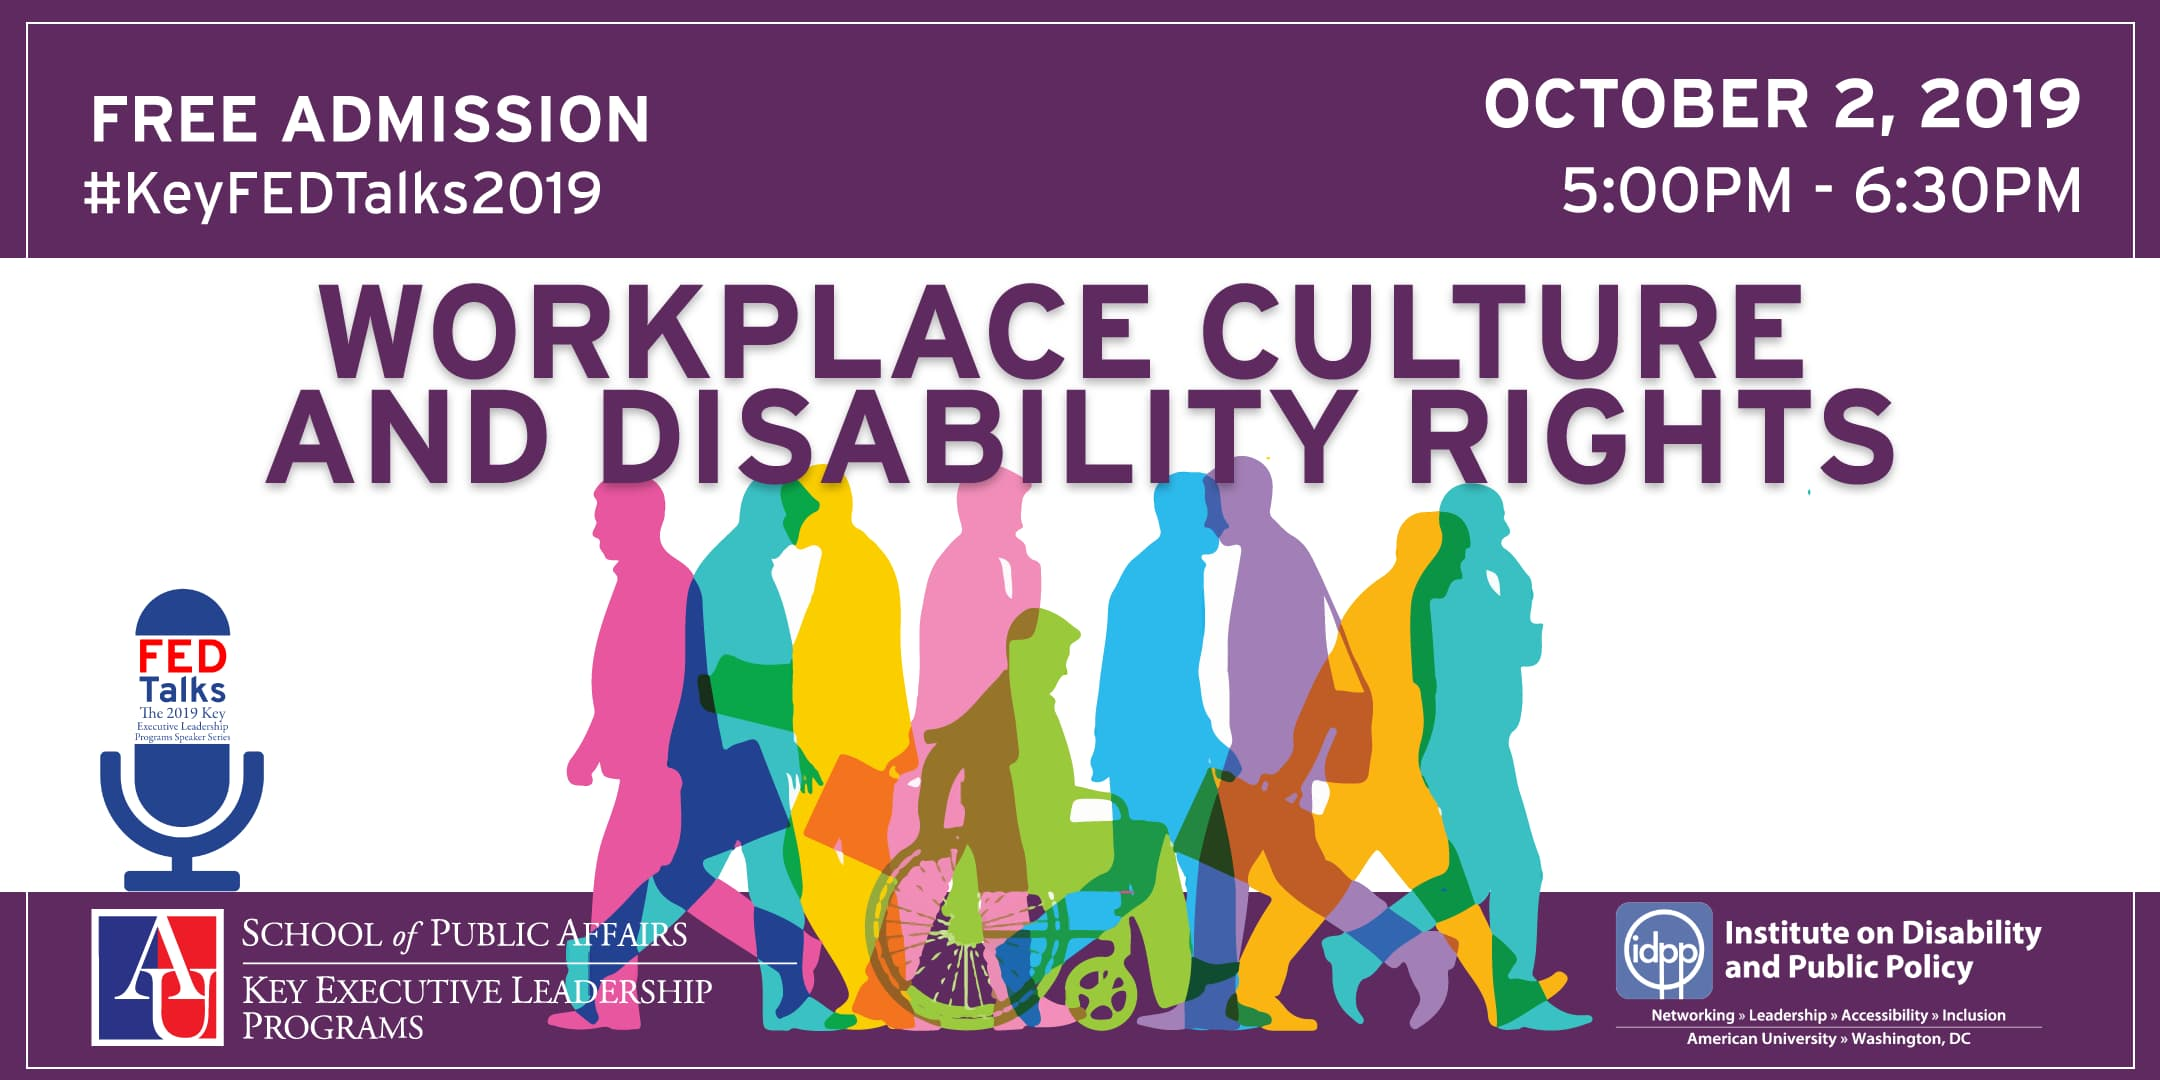 Workplace Culture and Disability Rights FEDTalks from October 2019